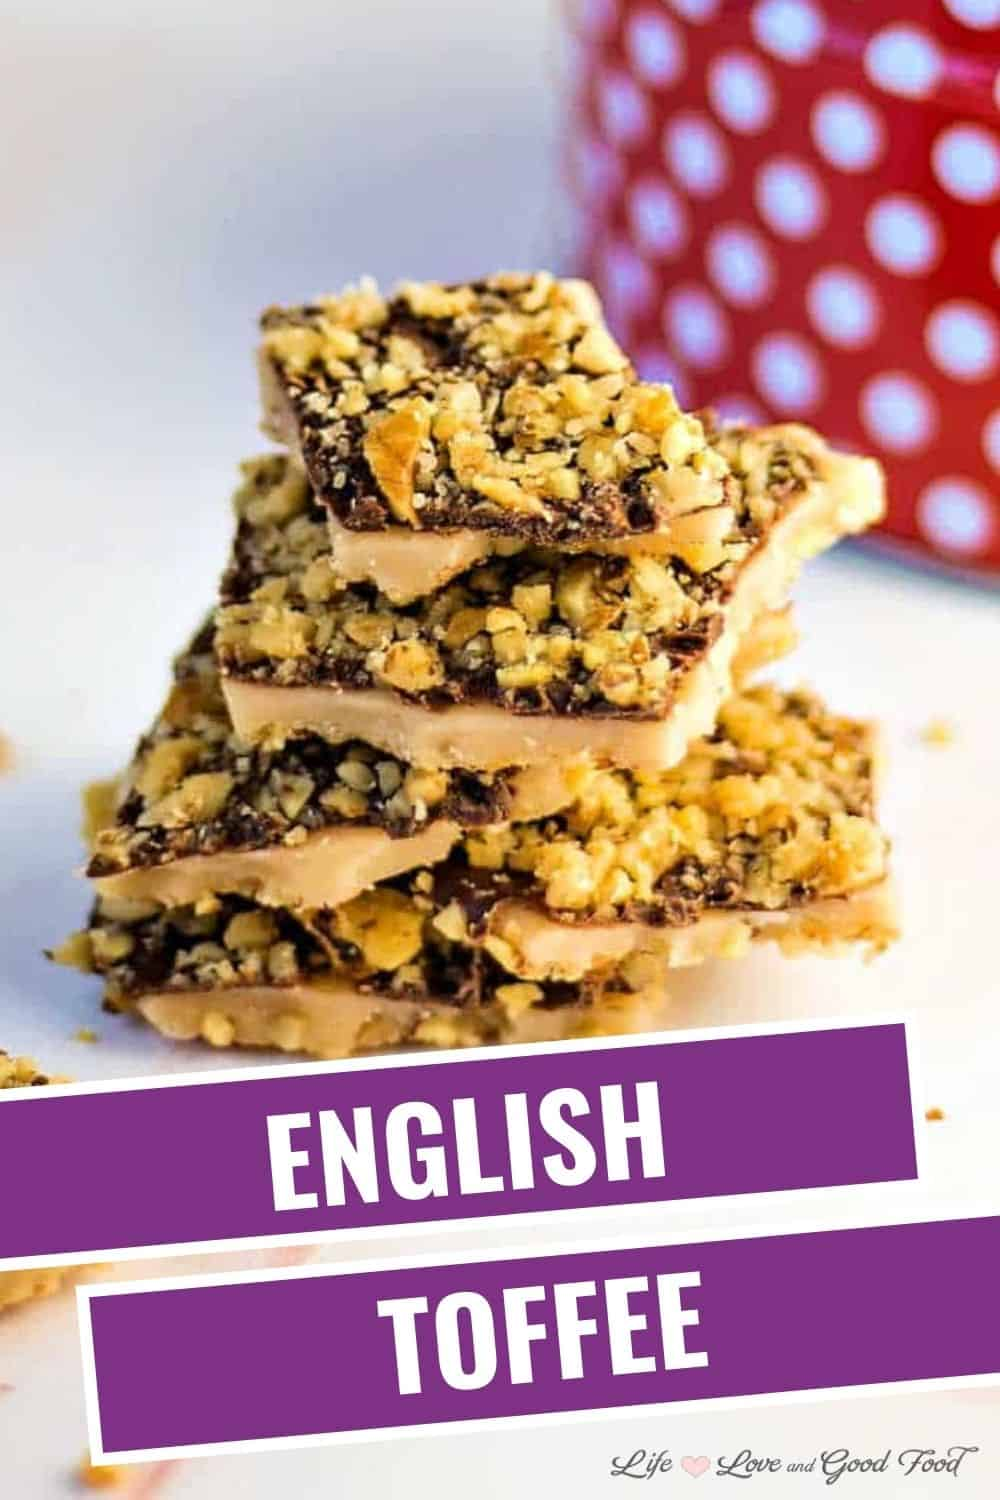 Traditional English Toffee made with buttery caramel, dark chocolate, and walnuts—a sweet, crunchy, and delicious candy for holiday gift giving. #candymaking #holidaybaking